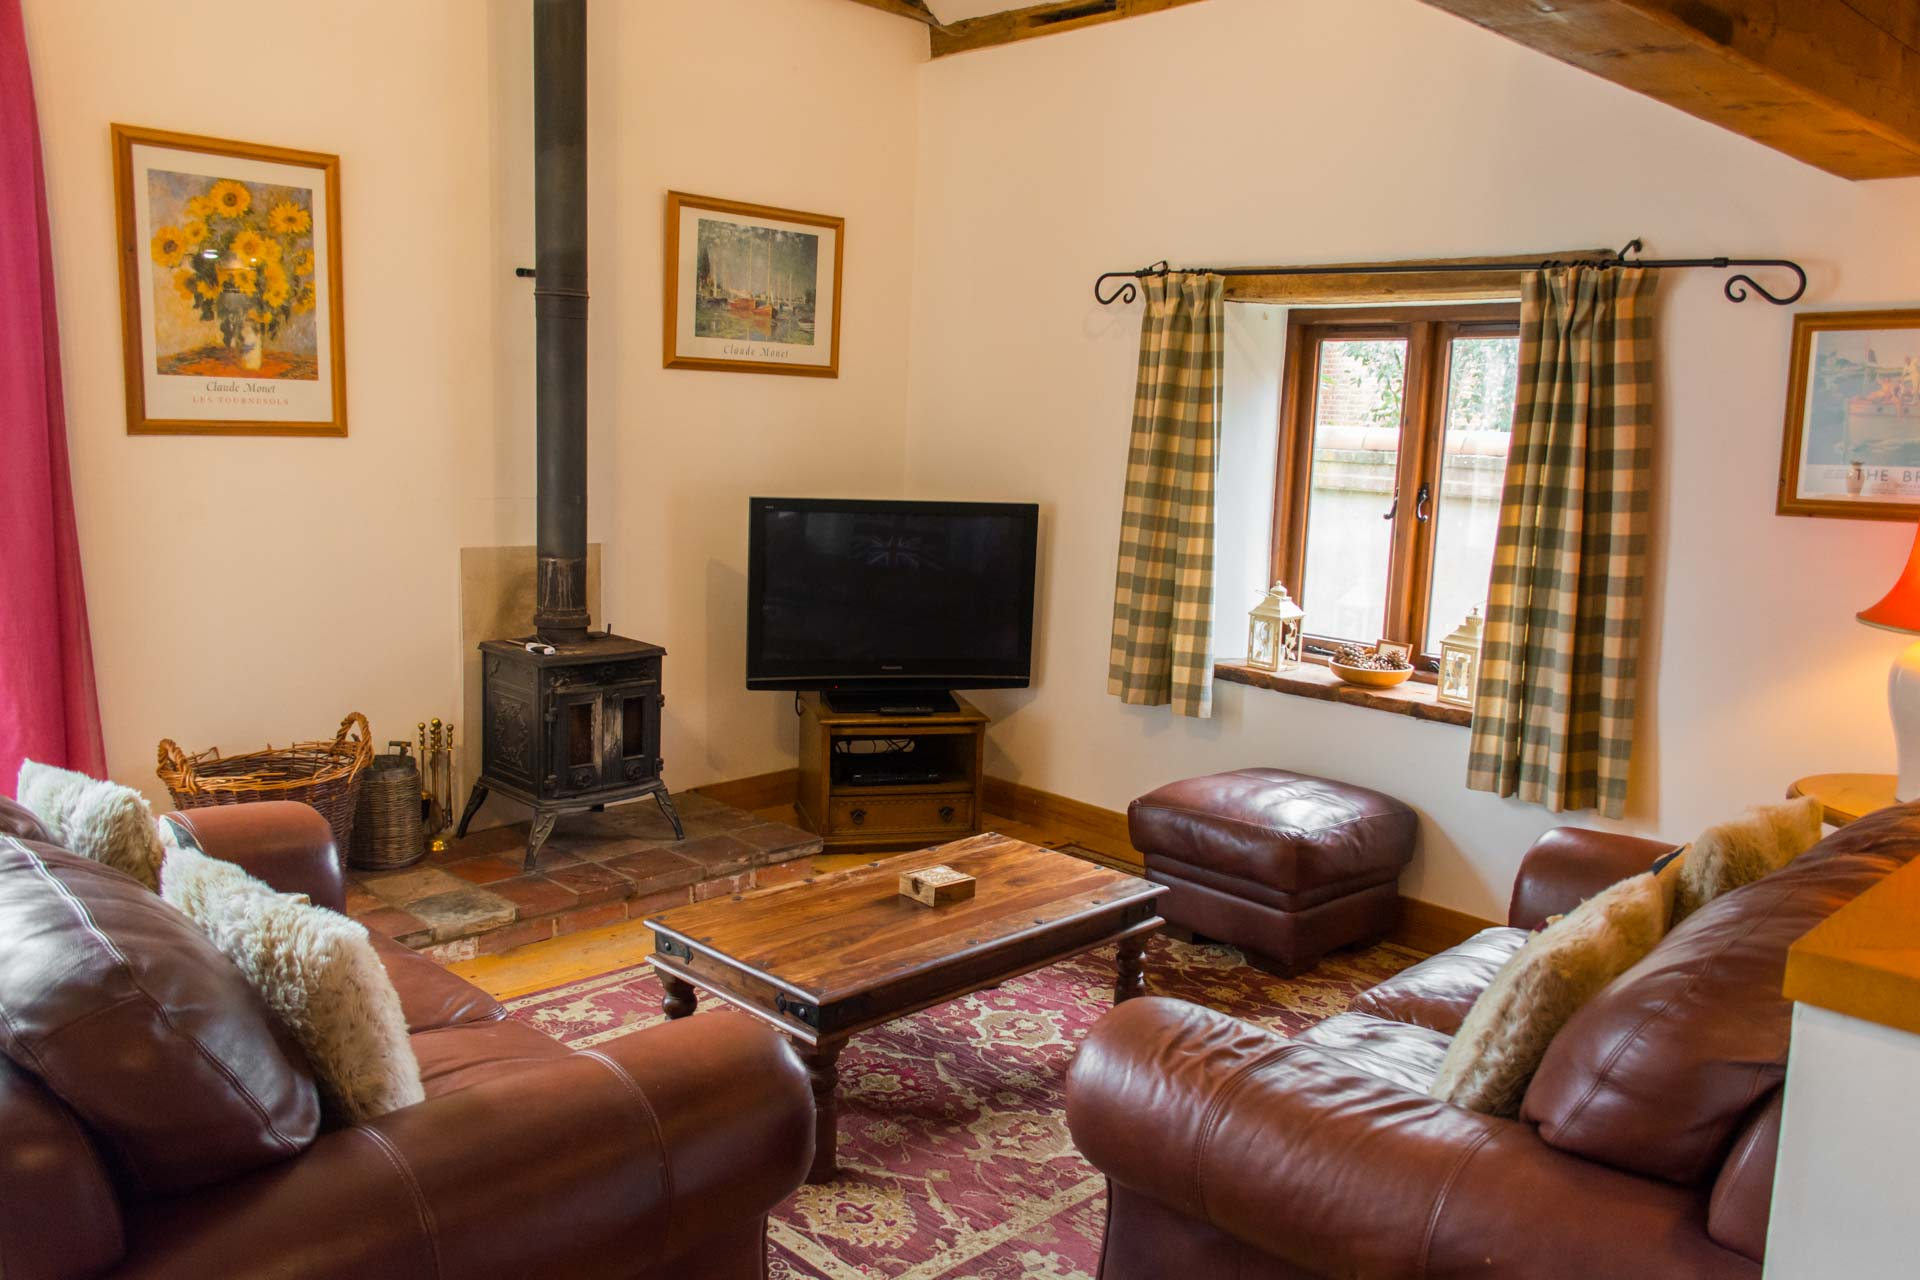 Interior shot of rural property shire horse barn showing the living area and furnishings